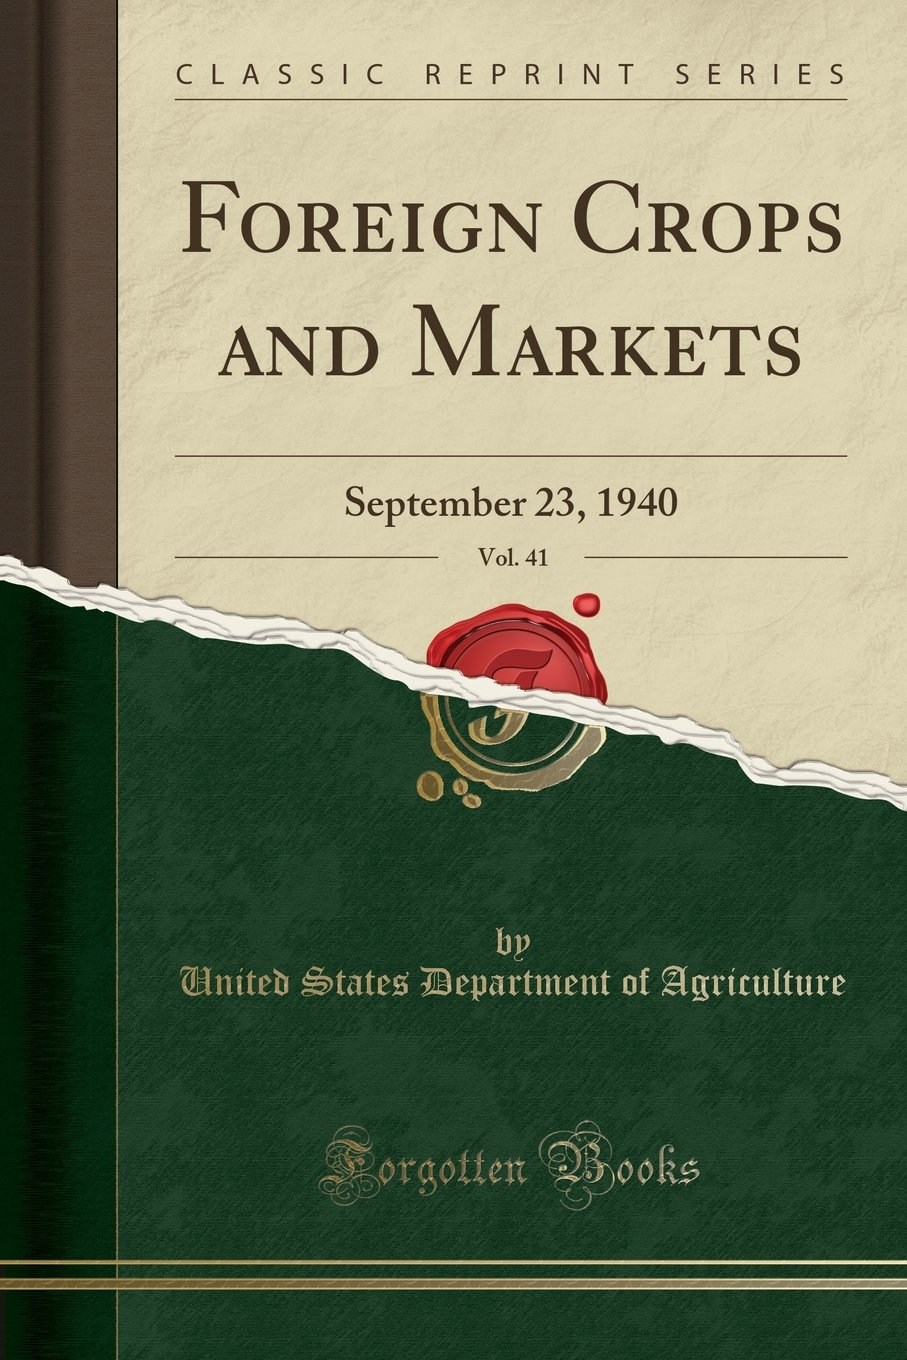 Foreign Crops and Markets, Vol. 41: September 23, 1940 (Classic Reprint) PDF